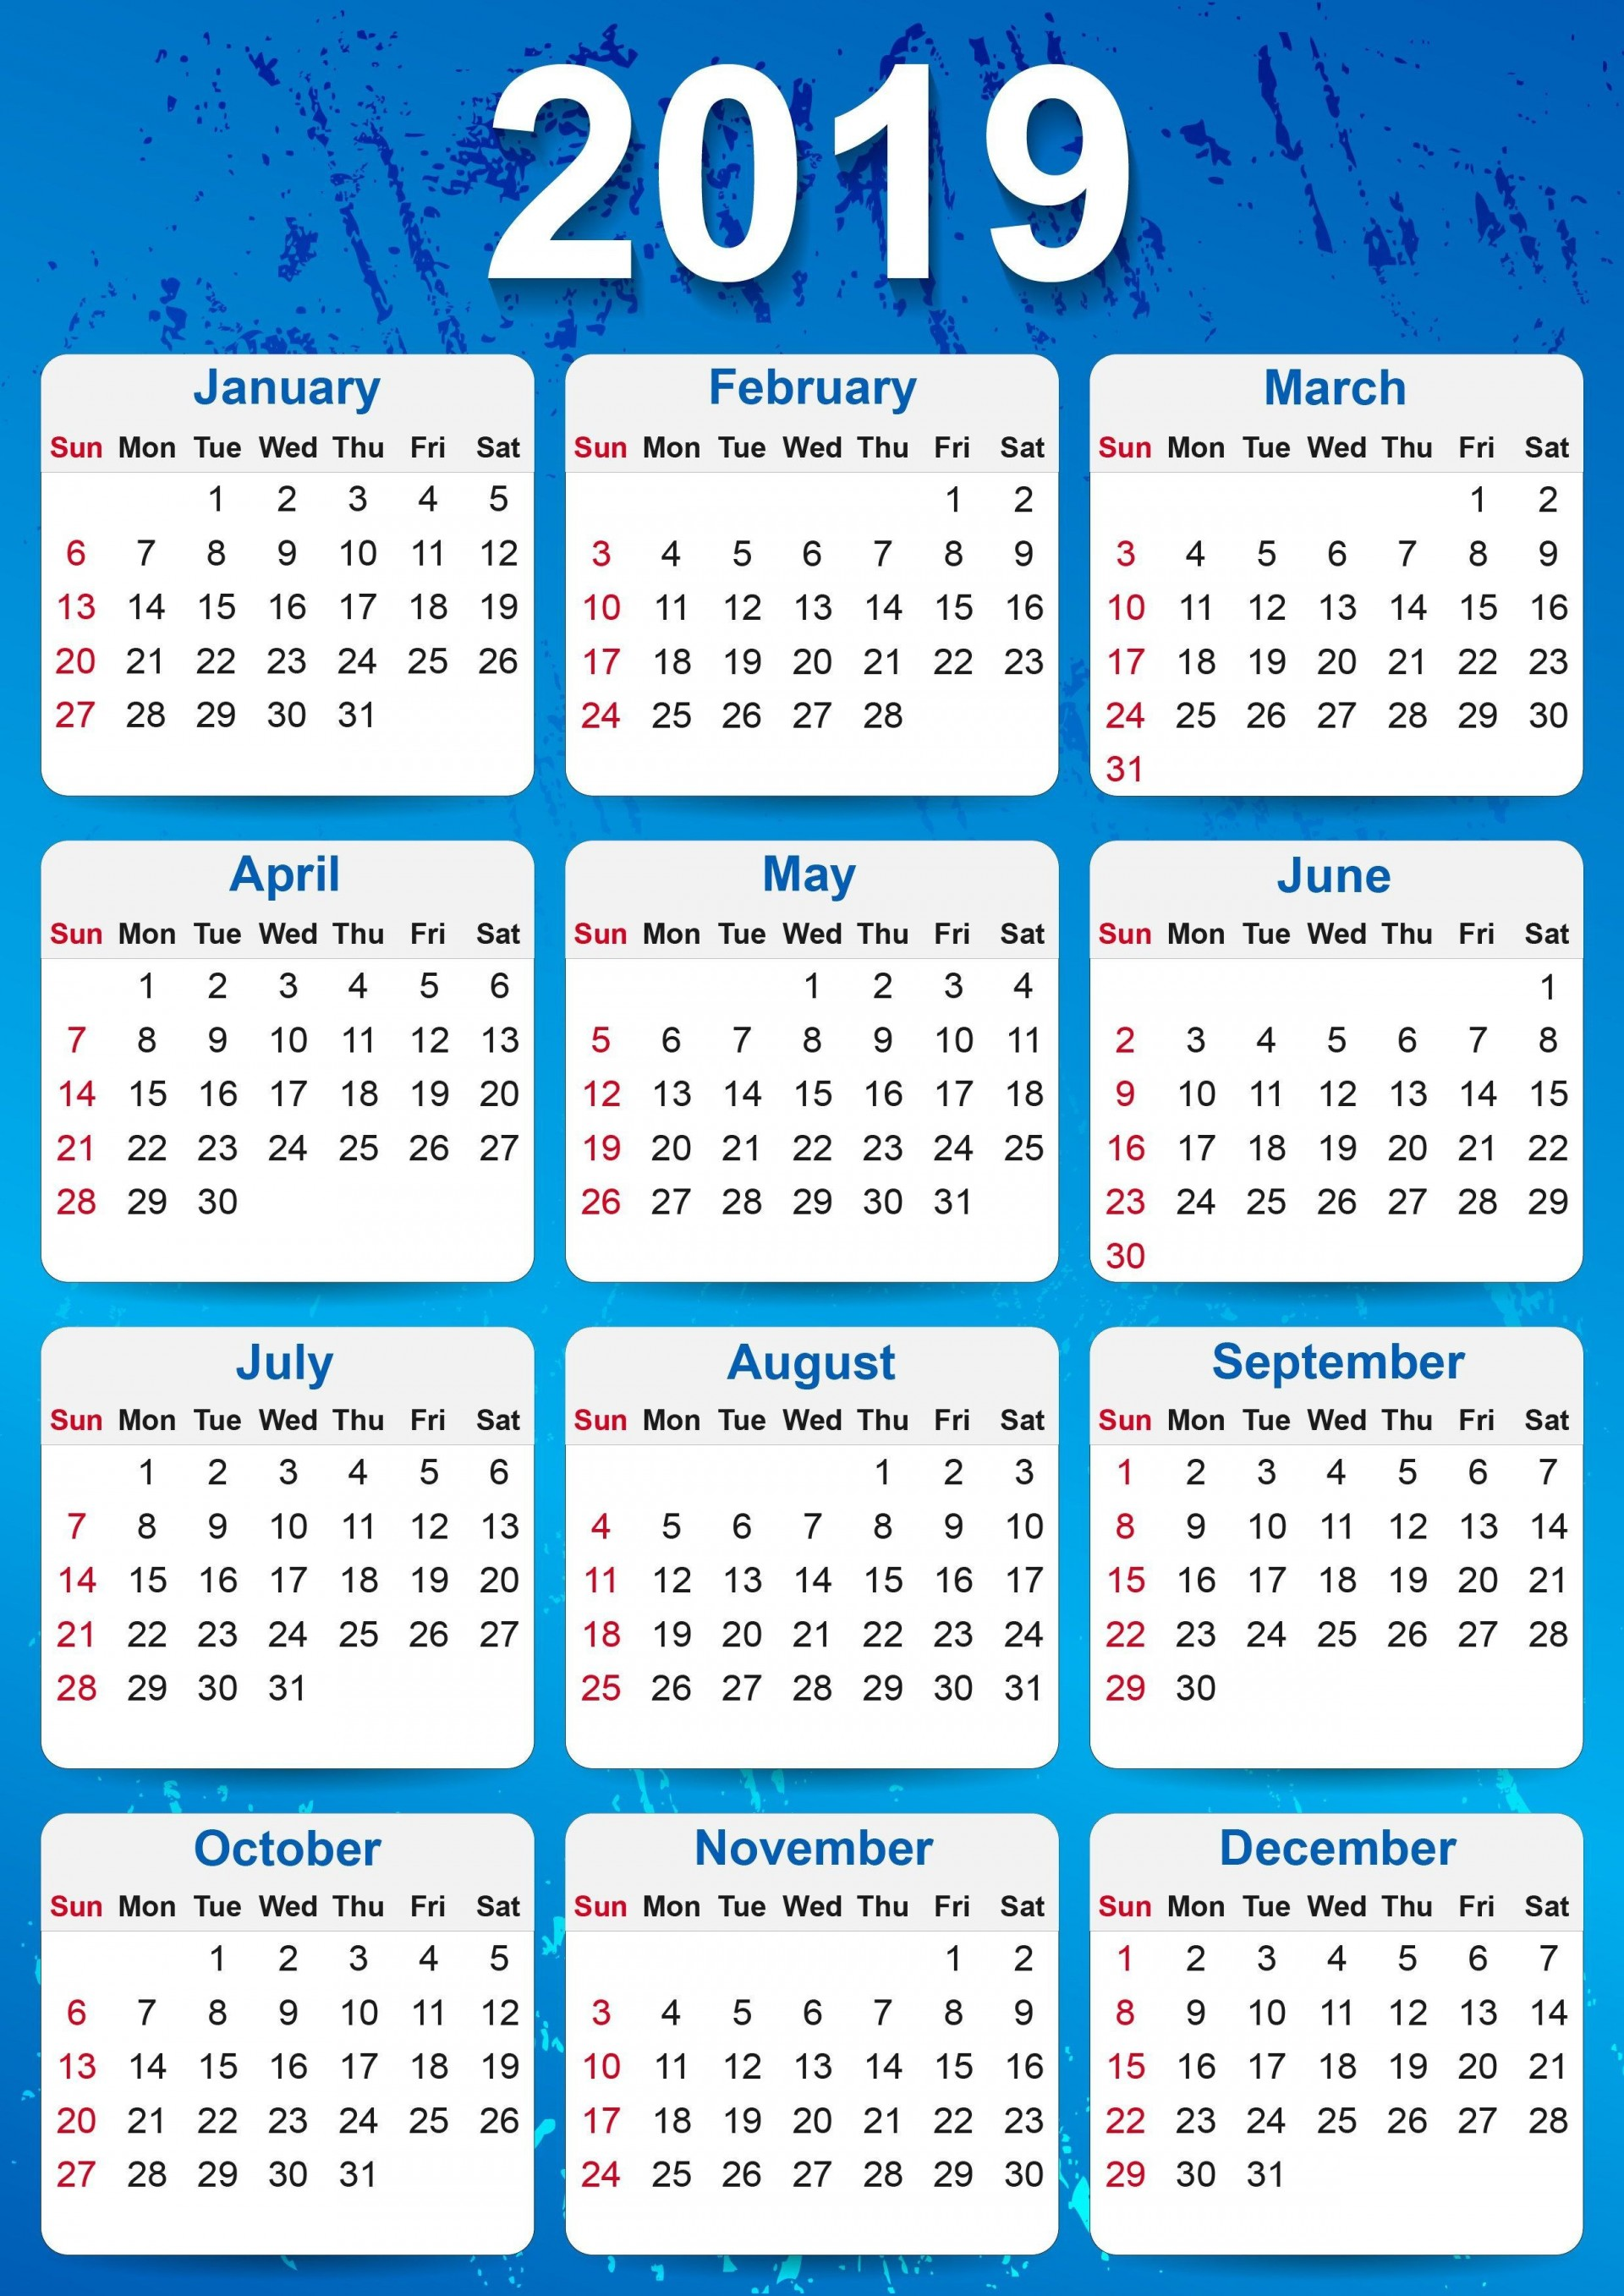 000 Staggering Calendar Template Free Download Concept  2020 Powerpoint Table Design 2019 Malaysia1920